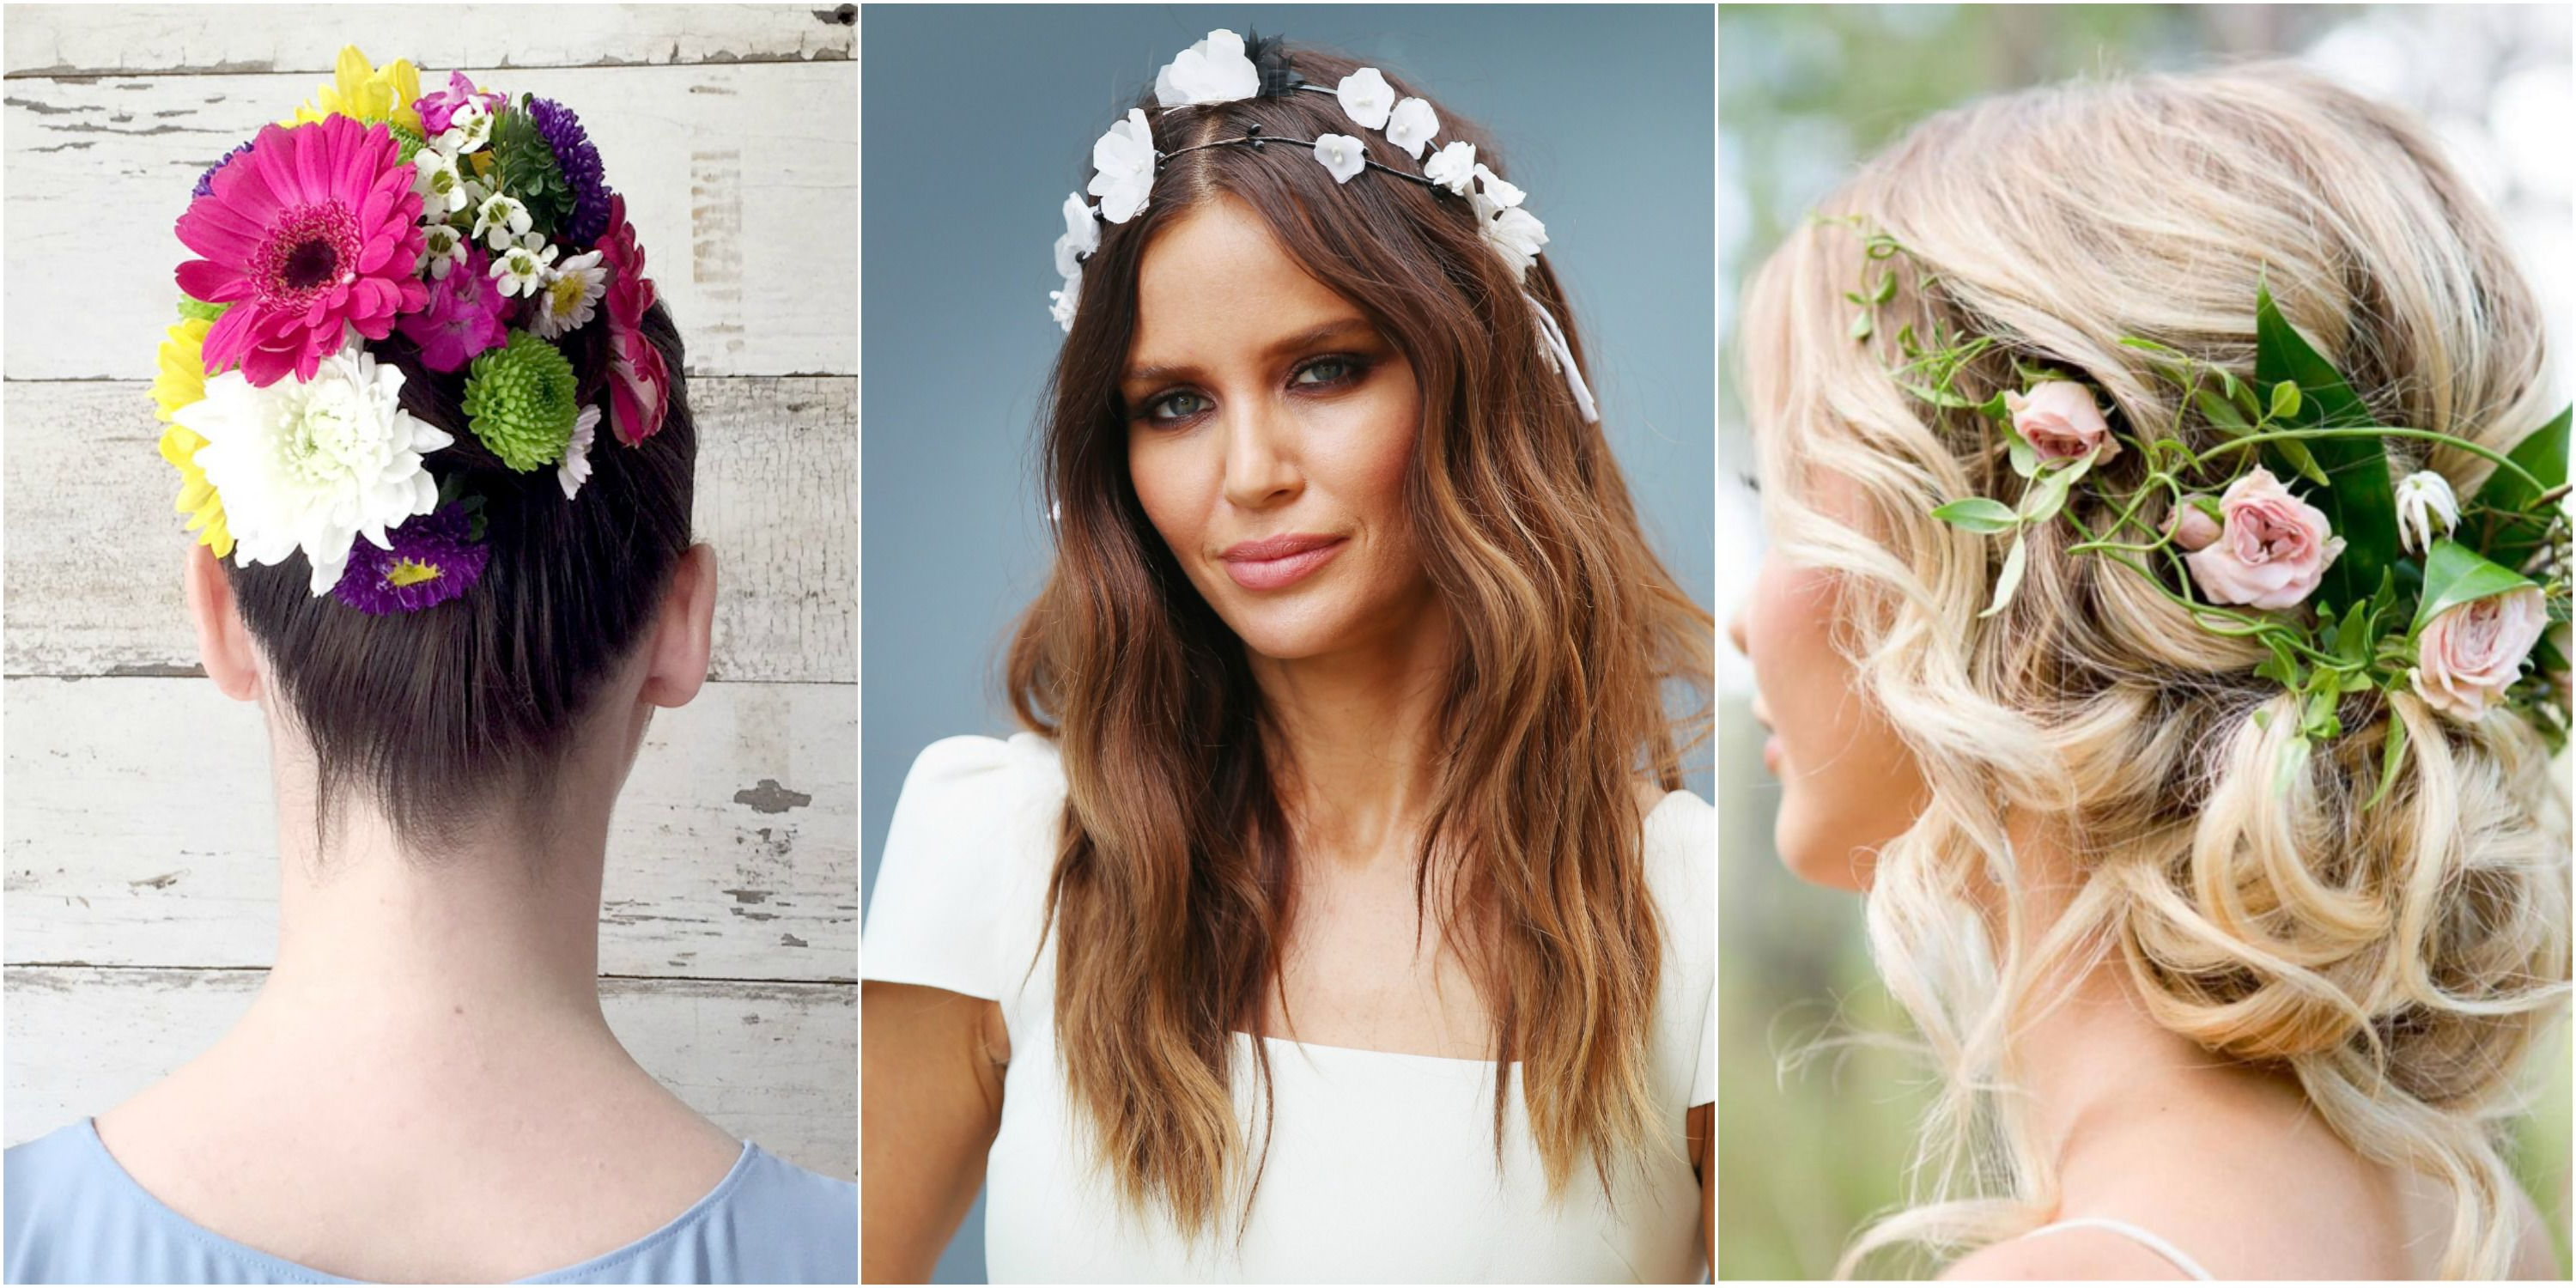 12 Pretty Flower Crowns And Floral Hairstyles — Flower Hairstyles With Regard To Most Current Floral Crown Half Up Half Down Bridal Hairstyles (View 1 of 20)